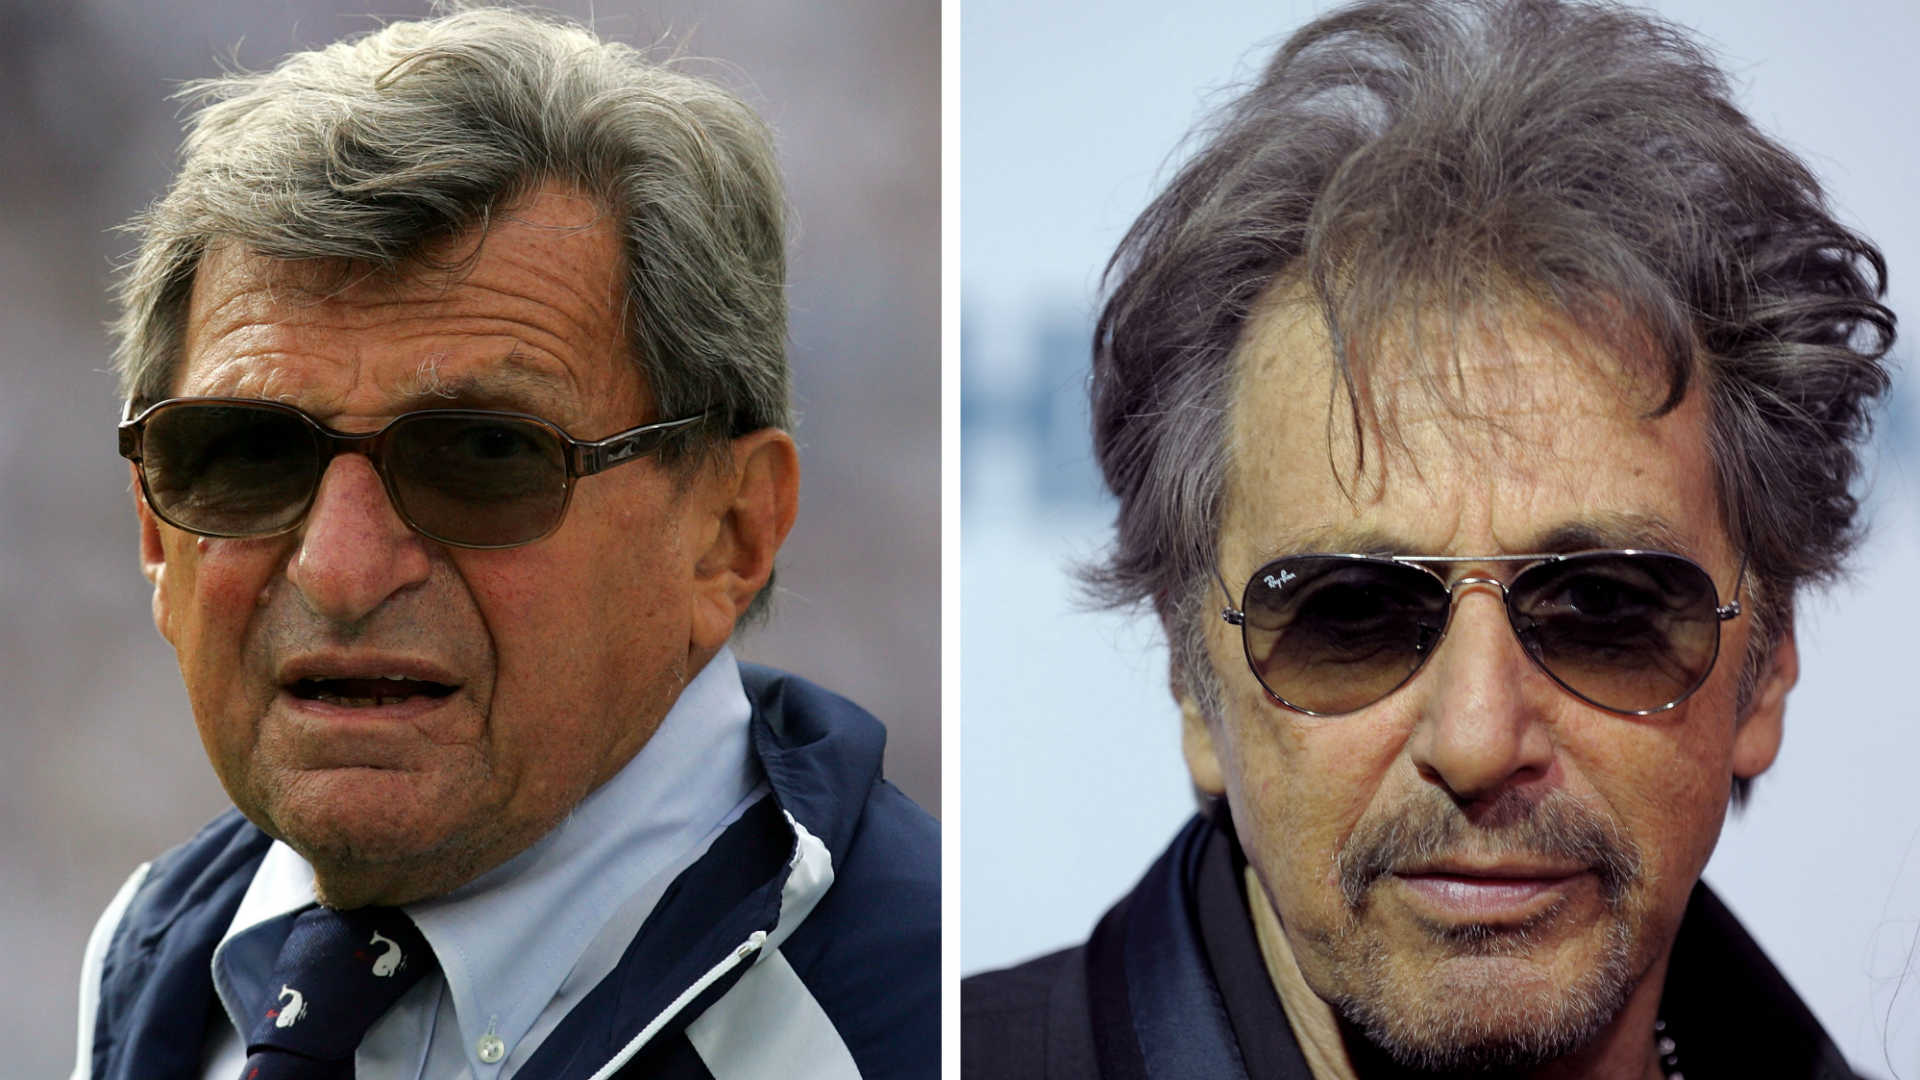 Al Pacino to play Joe Paterno in upcoming Penn State scandal movie